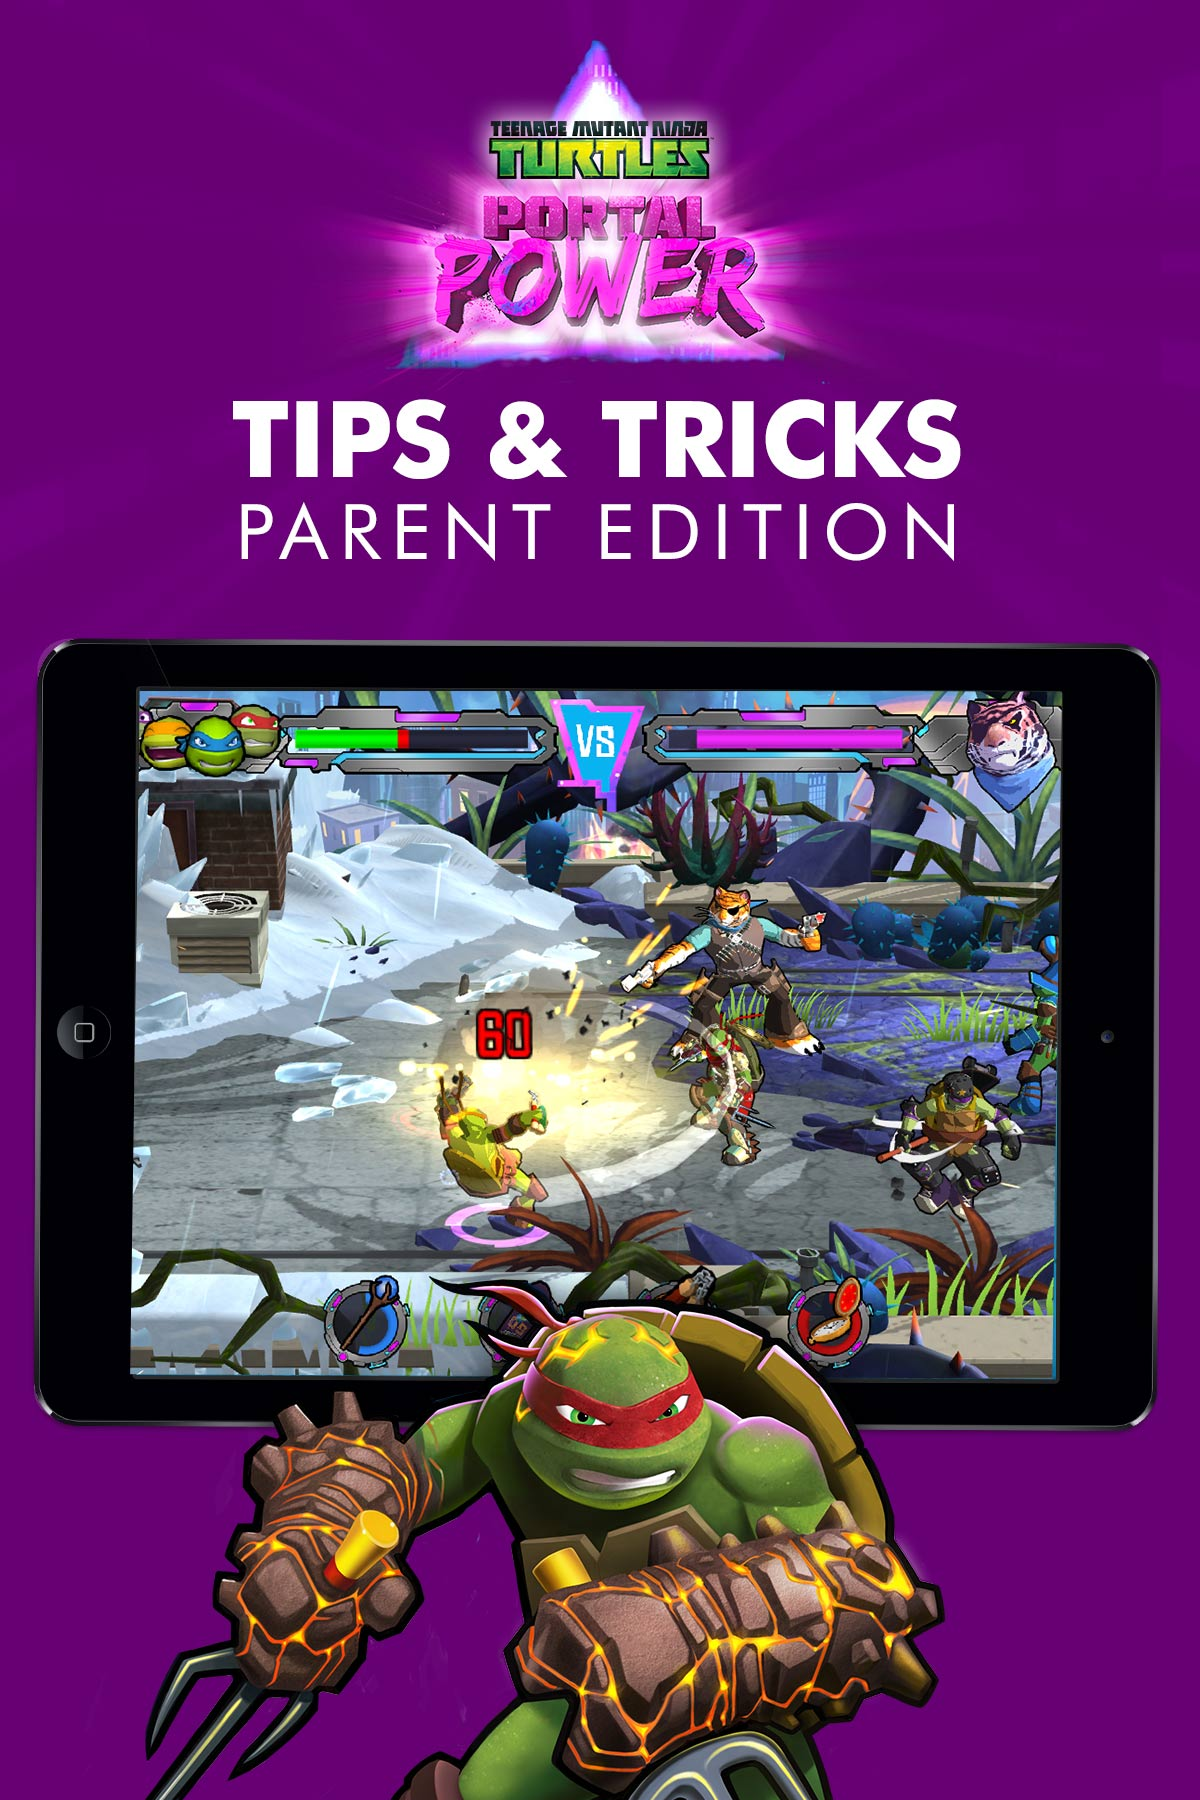 Tips Amp Tricks For Tmnt Portal Power Parent Edition